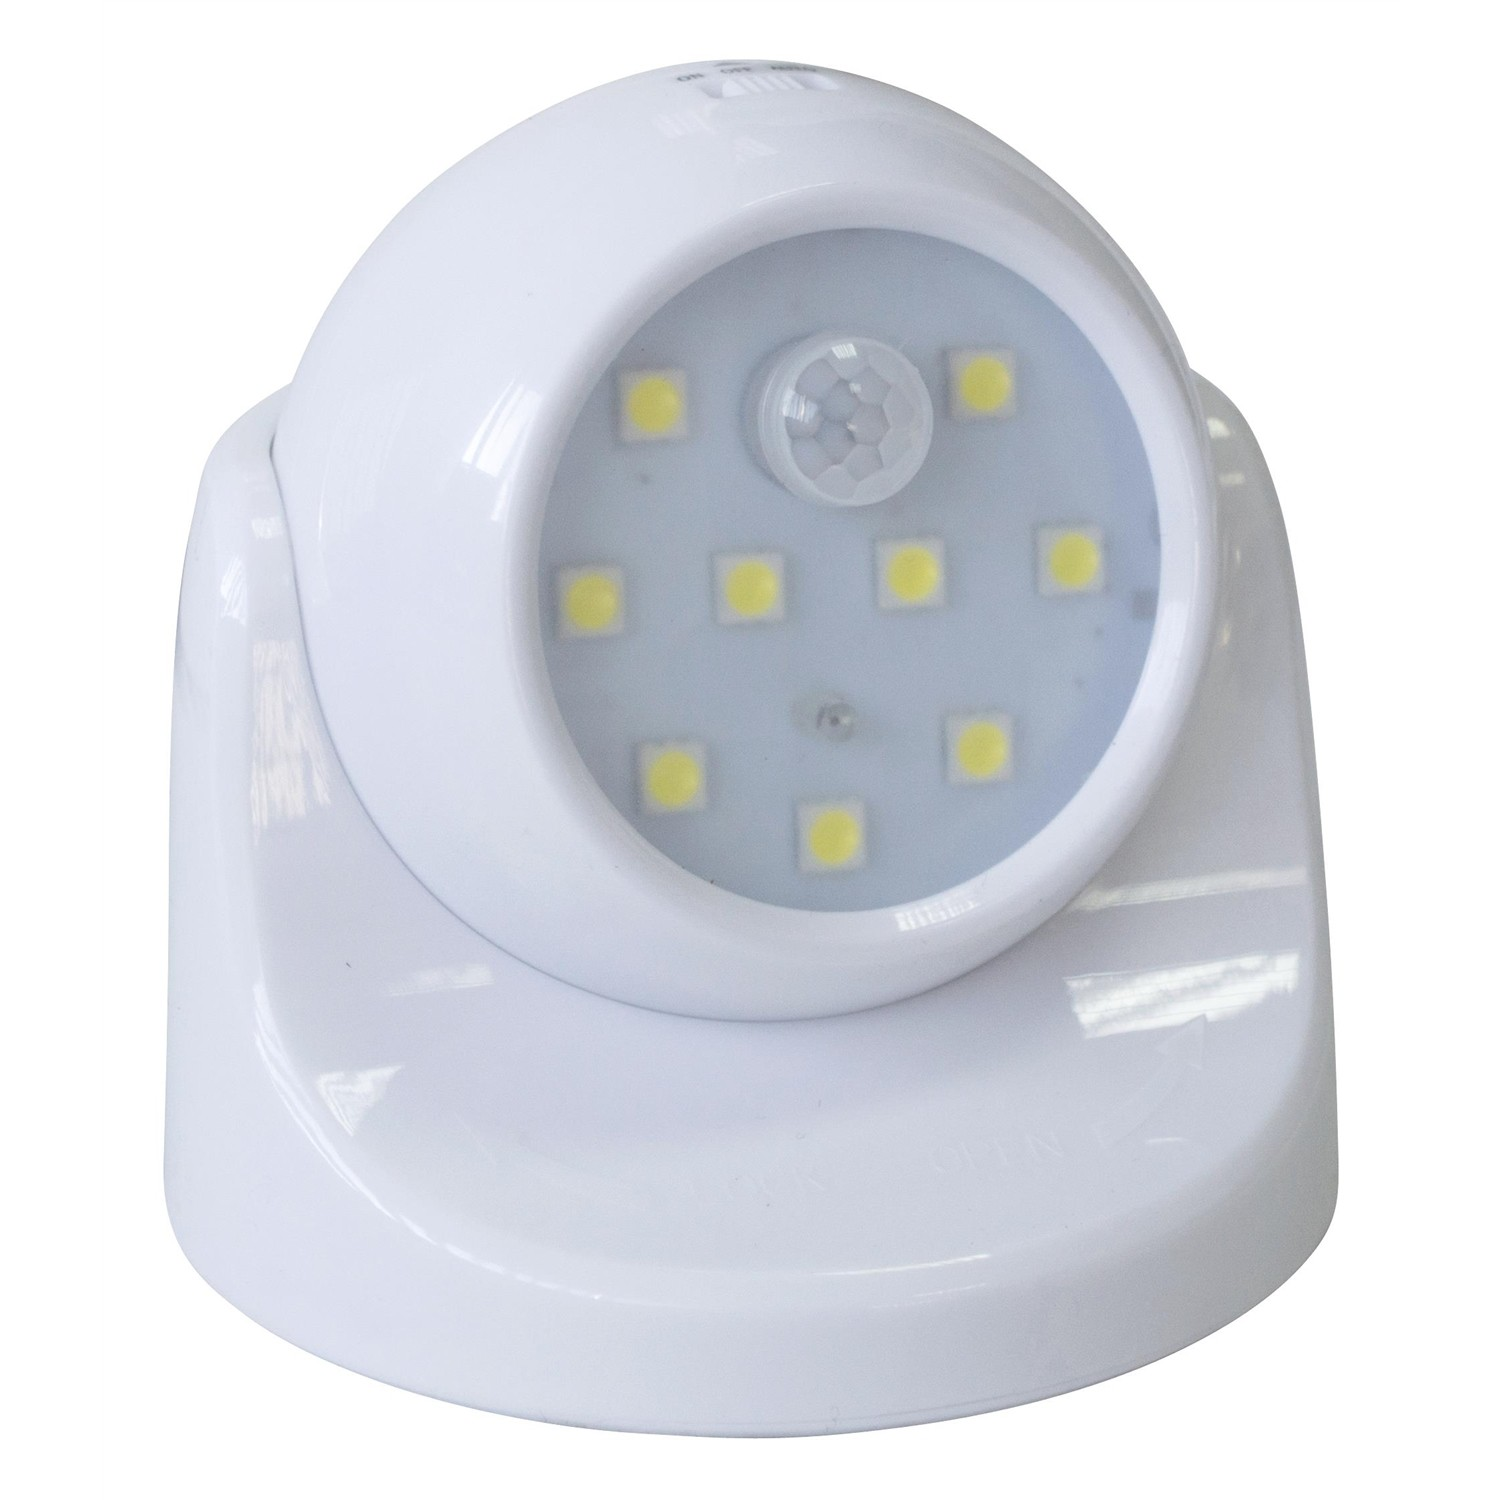 Rolson 61788 Smd Wireless Motion Sensor Light